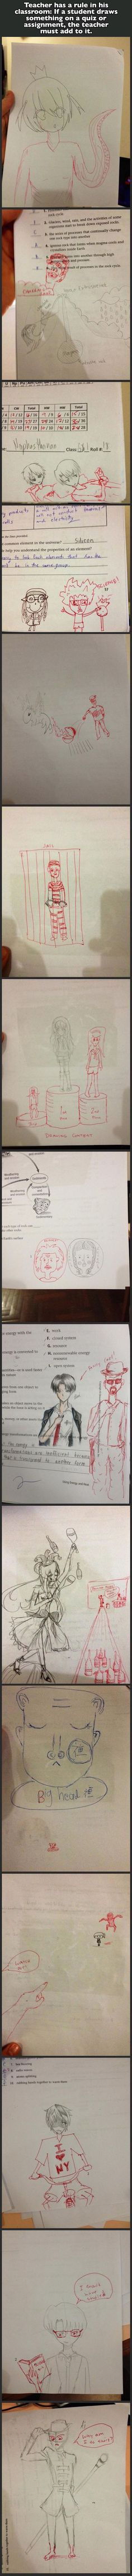 I wish my teacher would do this, I'm one of them if u ask him to name a character you drew he will - humor Humour Scolaire I wish my teacher would do this, I'm one of them if u ask him to name a charac… Funny Cute, The Funny, Hilarious, Funny Test, Gabe The Dog, Funny Pins, Funny Memes, Jokes, Haha